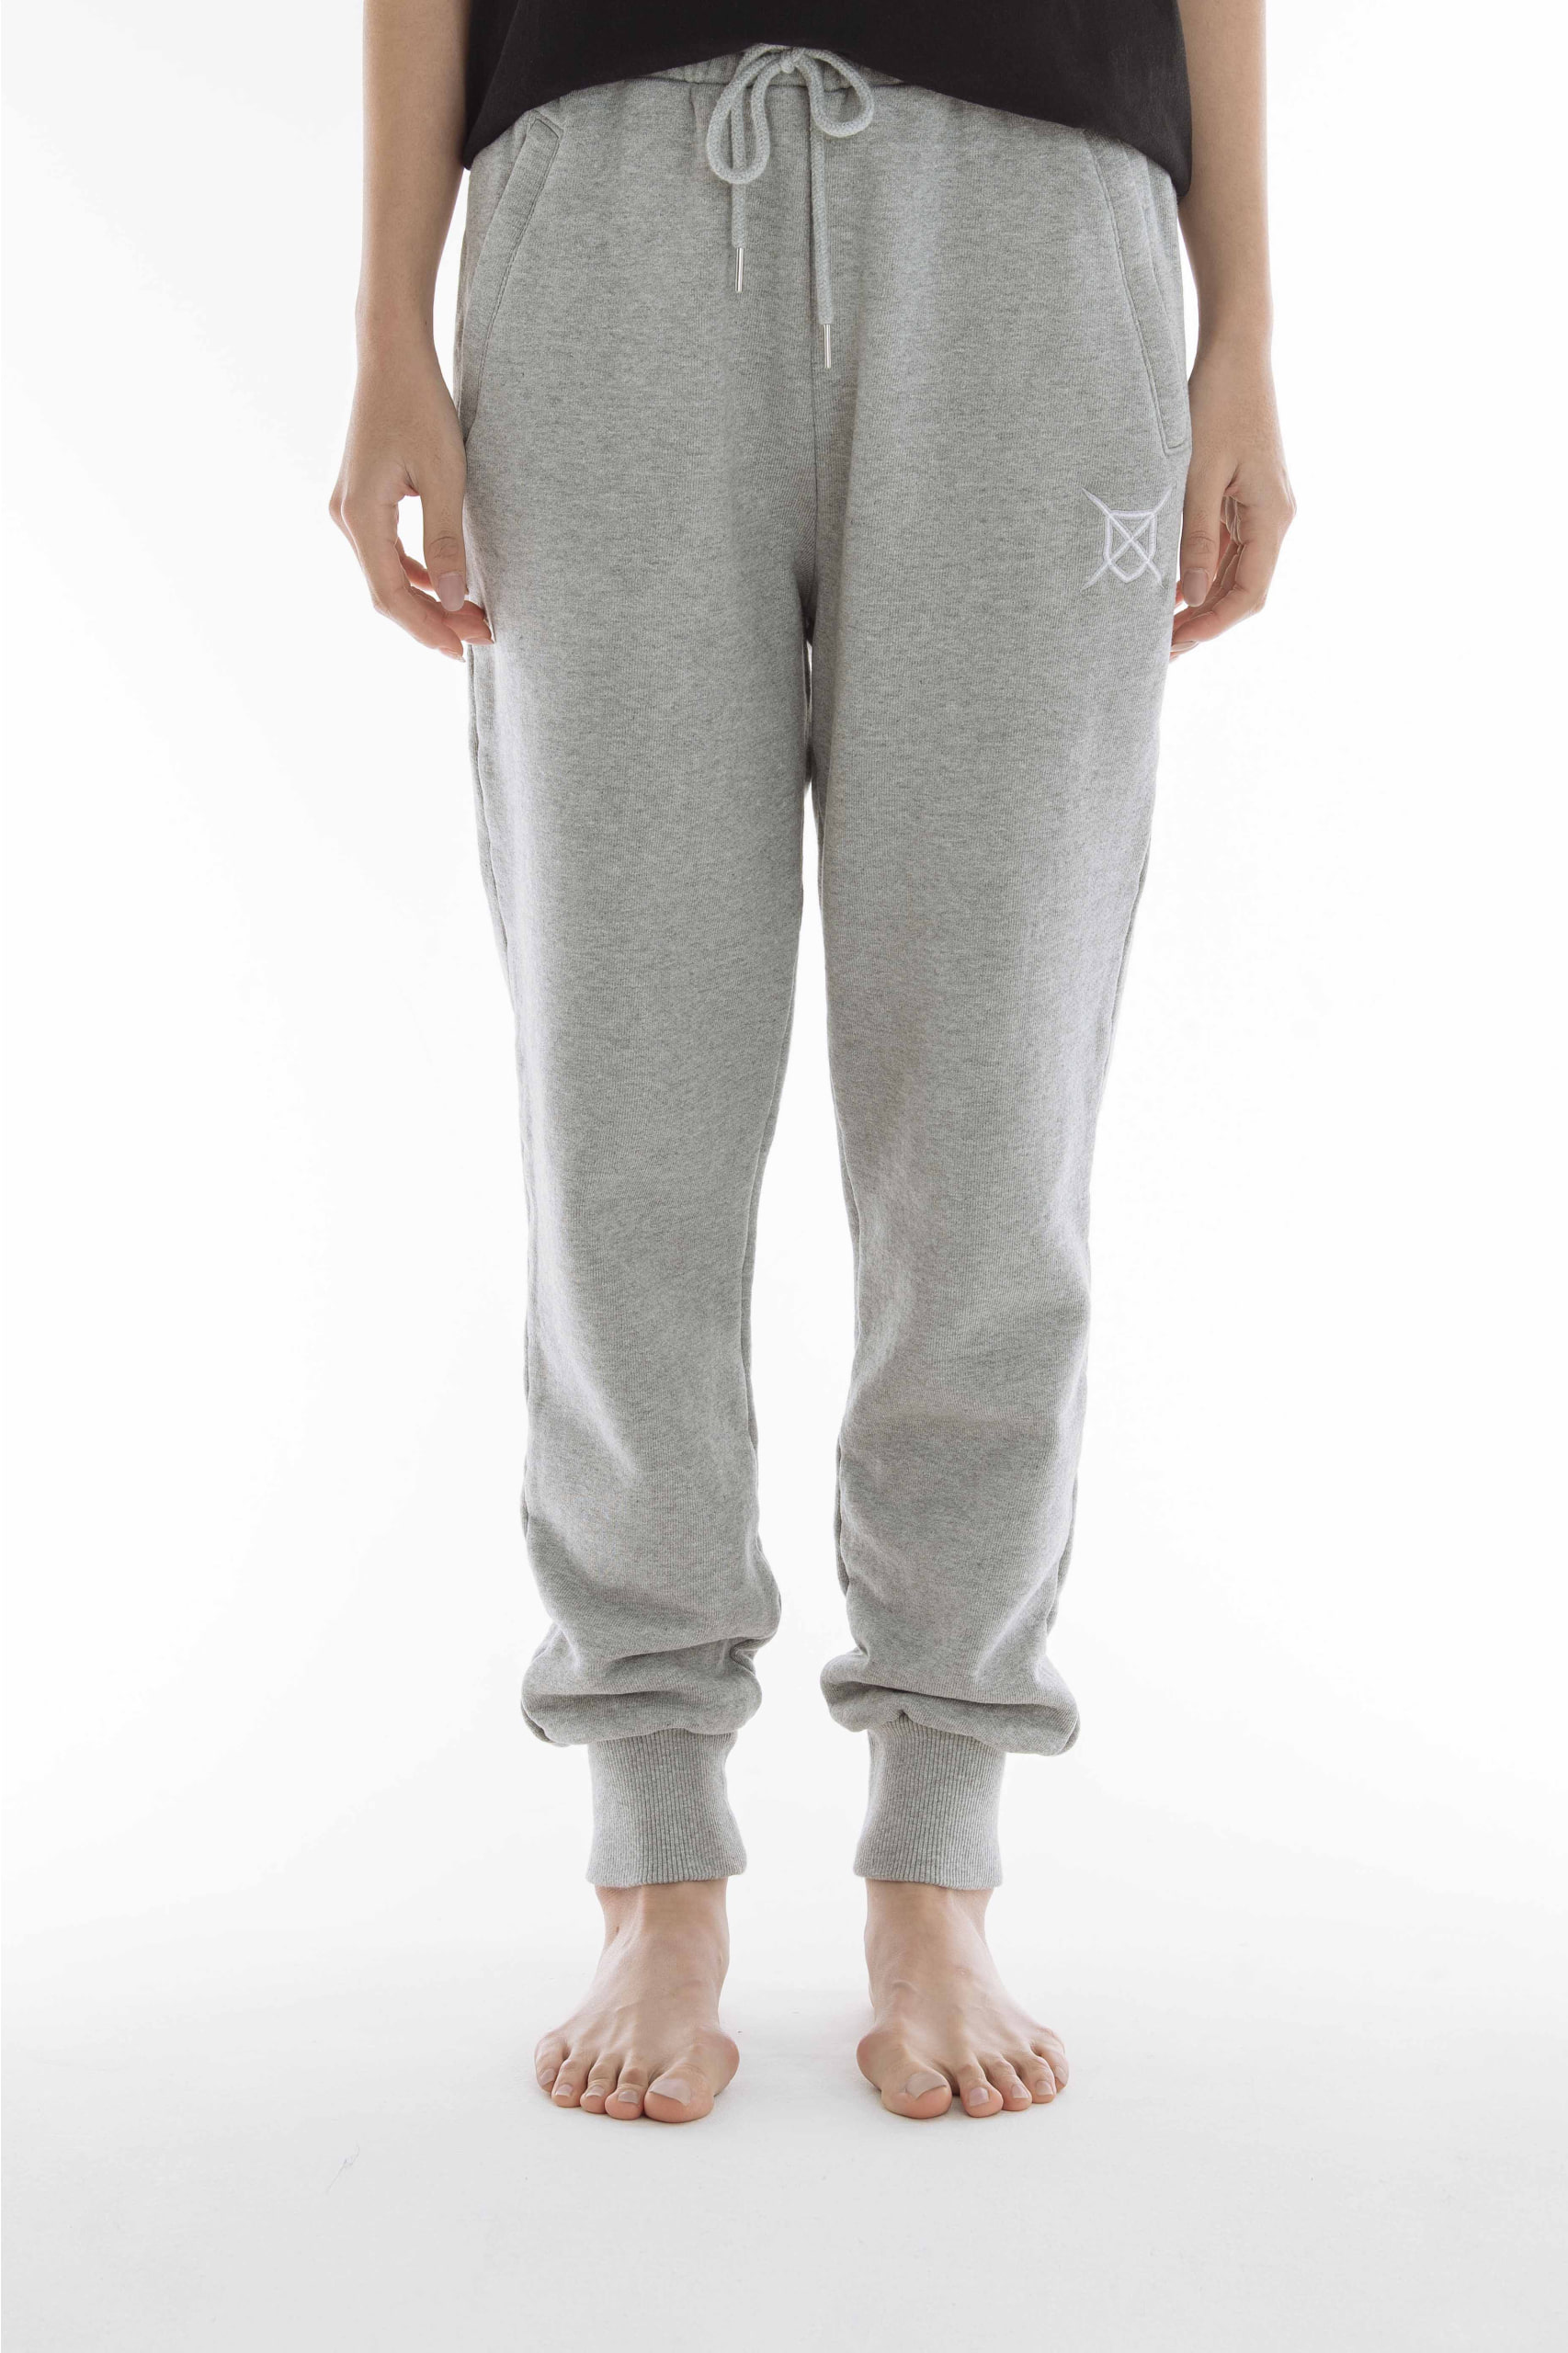 LOGO Joger Pants(Grey)